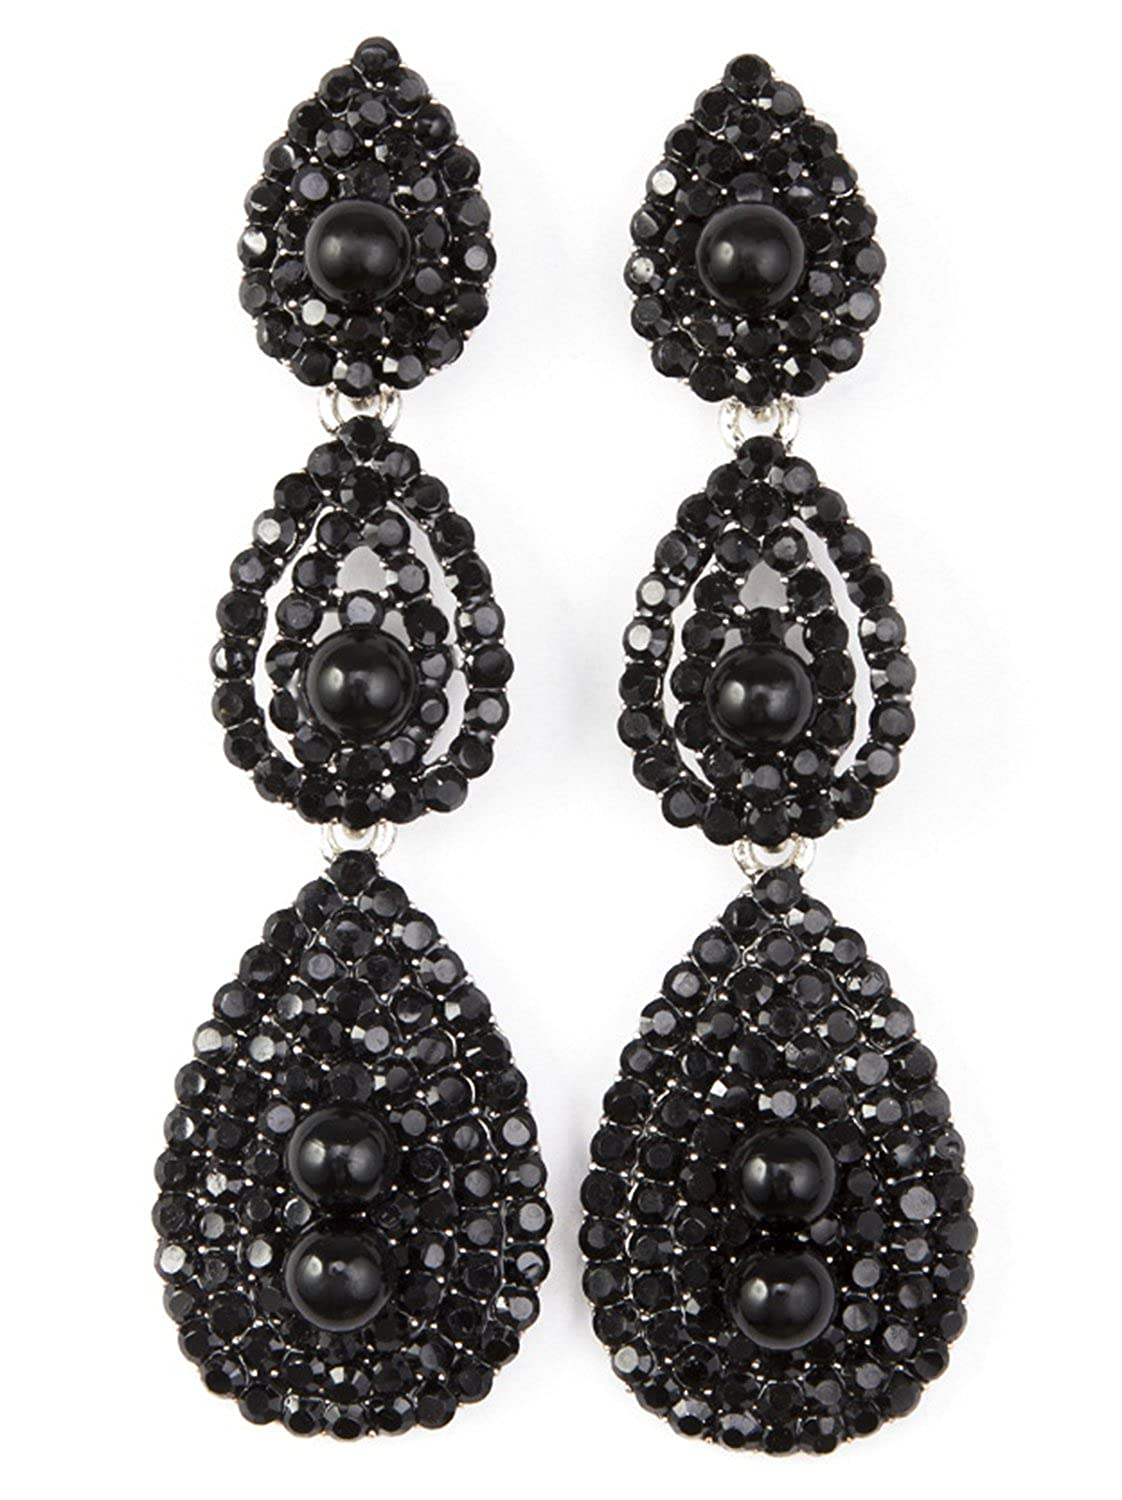 e2370abd99e Amazon.com  Vijiv Gatsby Earrings Vintage 1920s Drop Chandelier Flapper Jewelry  Accessories Black One Size  Jewelry